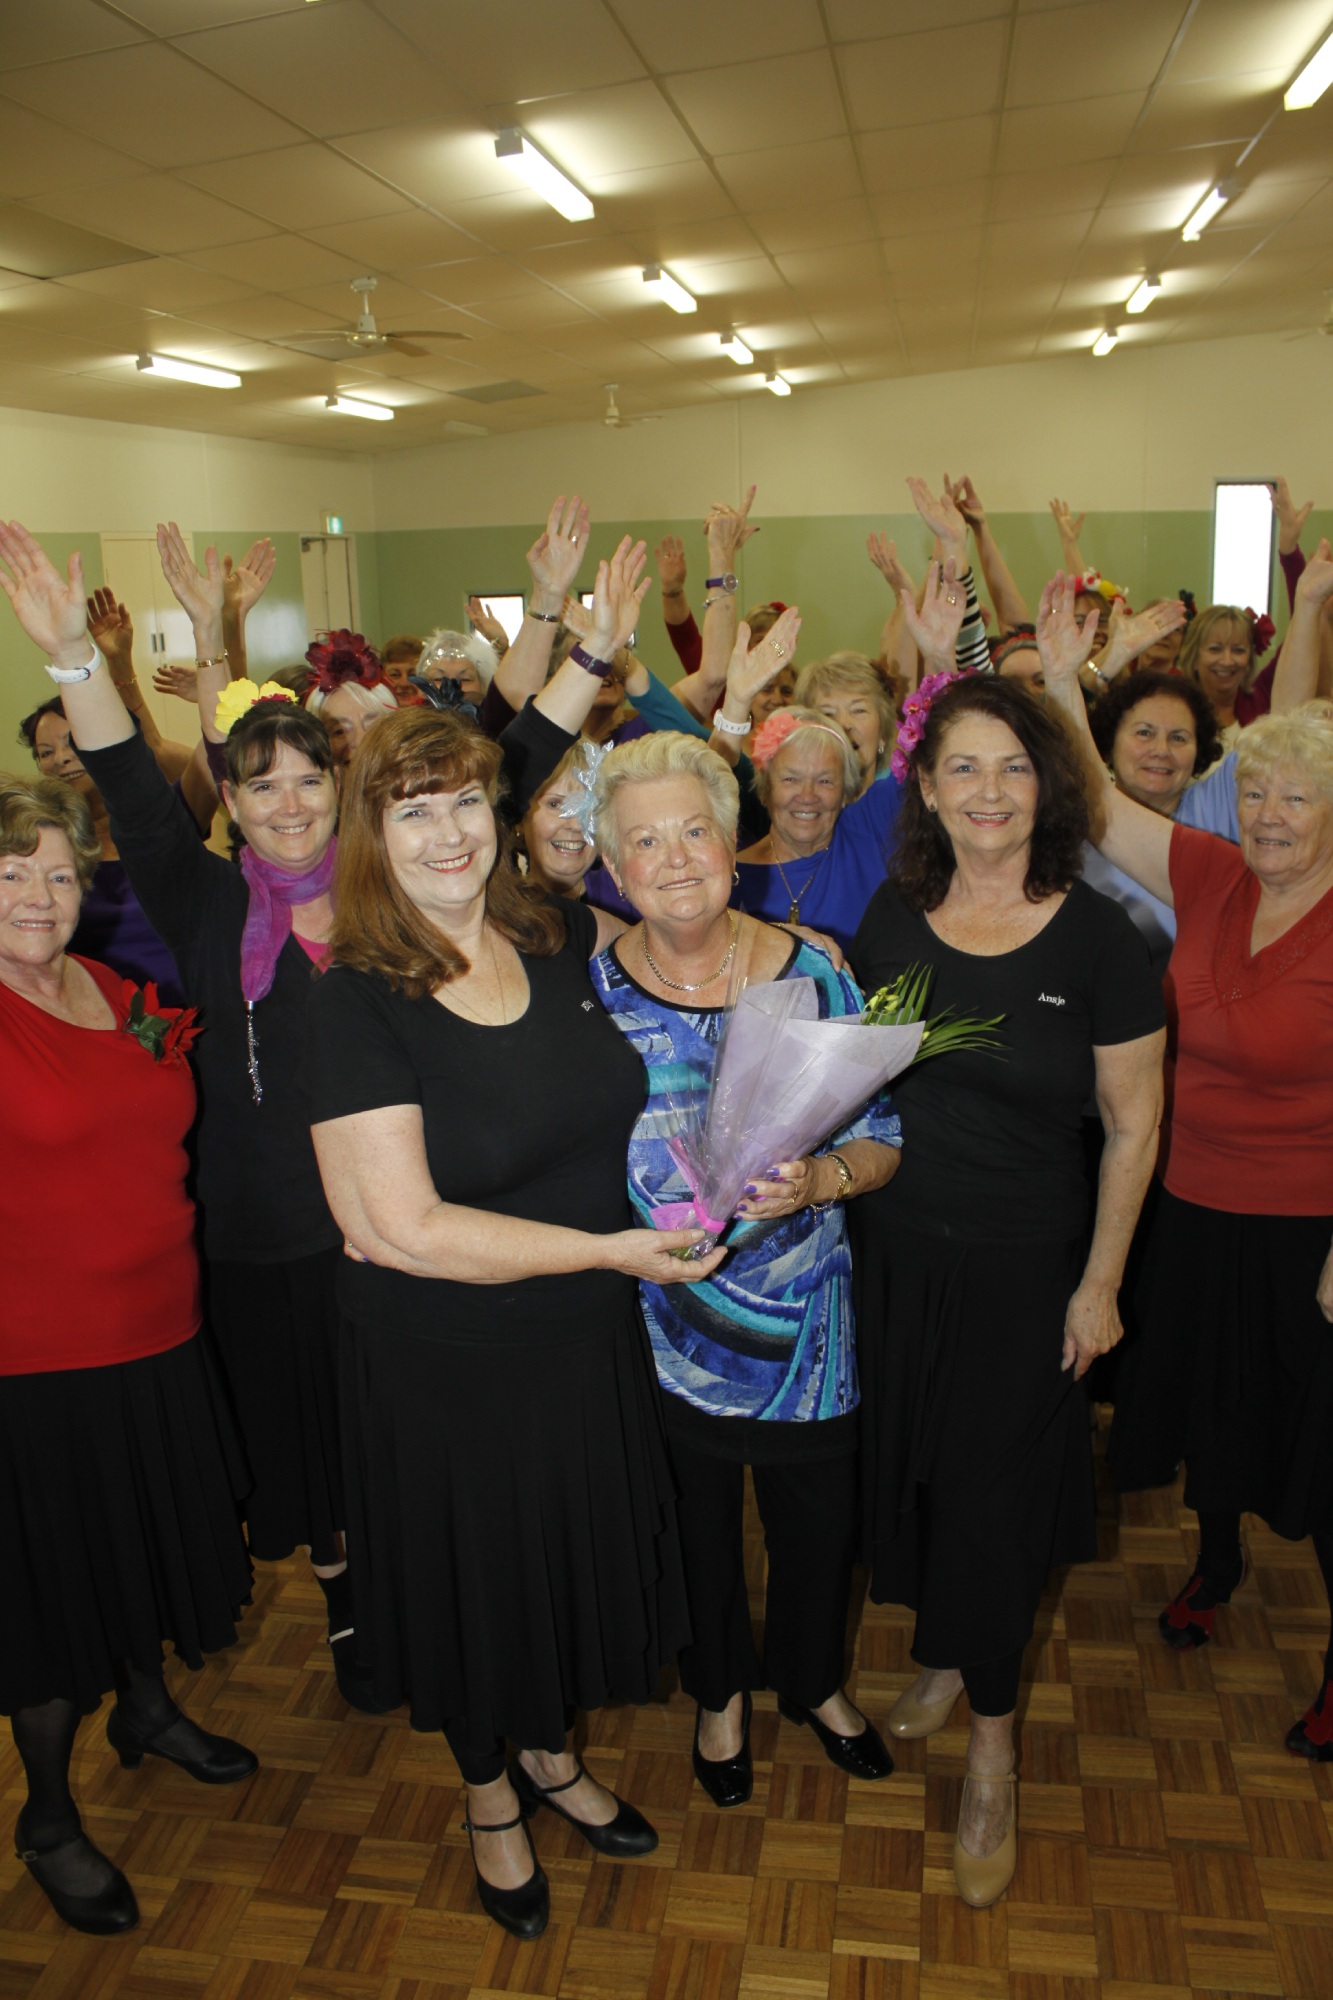 Elly Burnham, Lesley Robson and Ansje Renshaw with Swing and Sway dancing students.